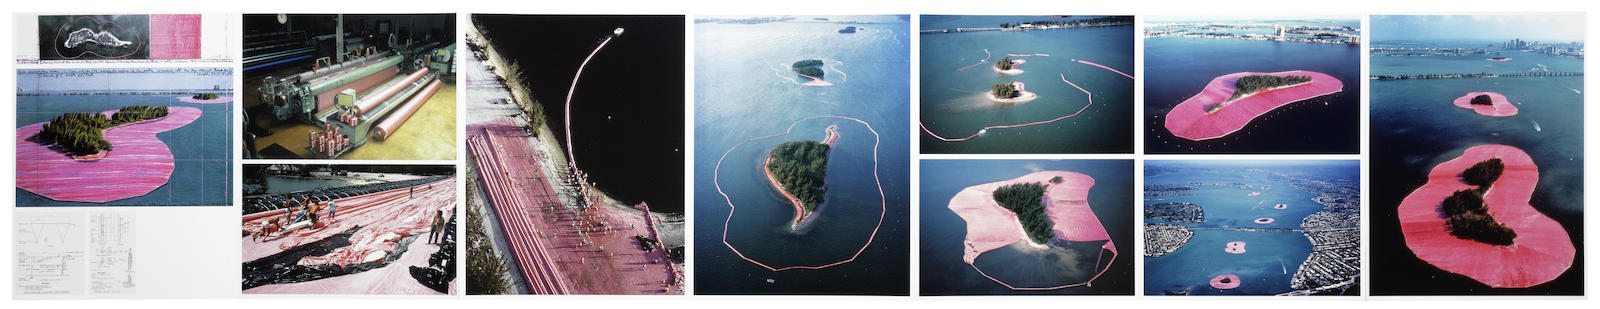 Christo and Jeanne-Claude-Surrounded Islands, Biscayne Bay, Greater Miami, Florida 1980-1983-2009